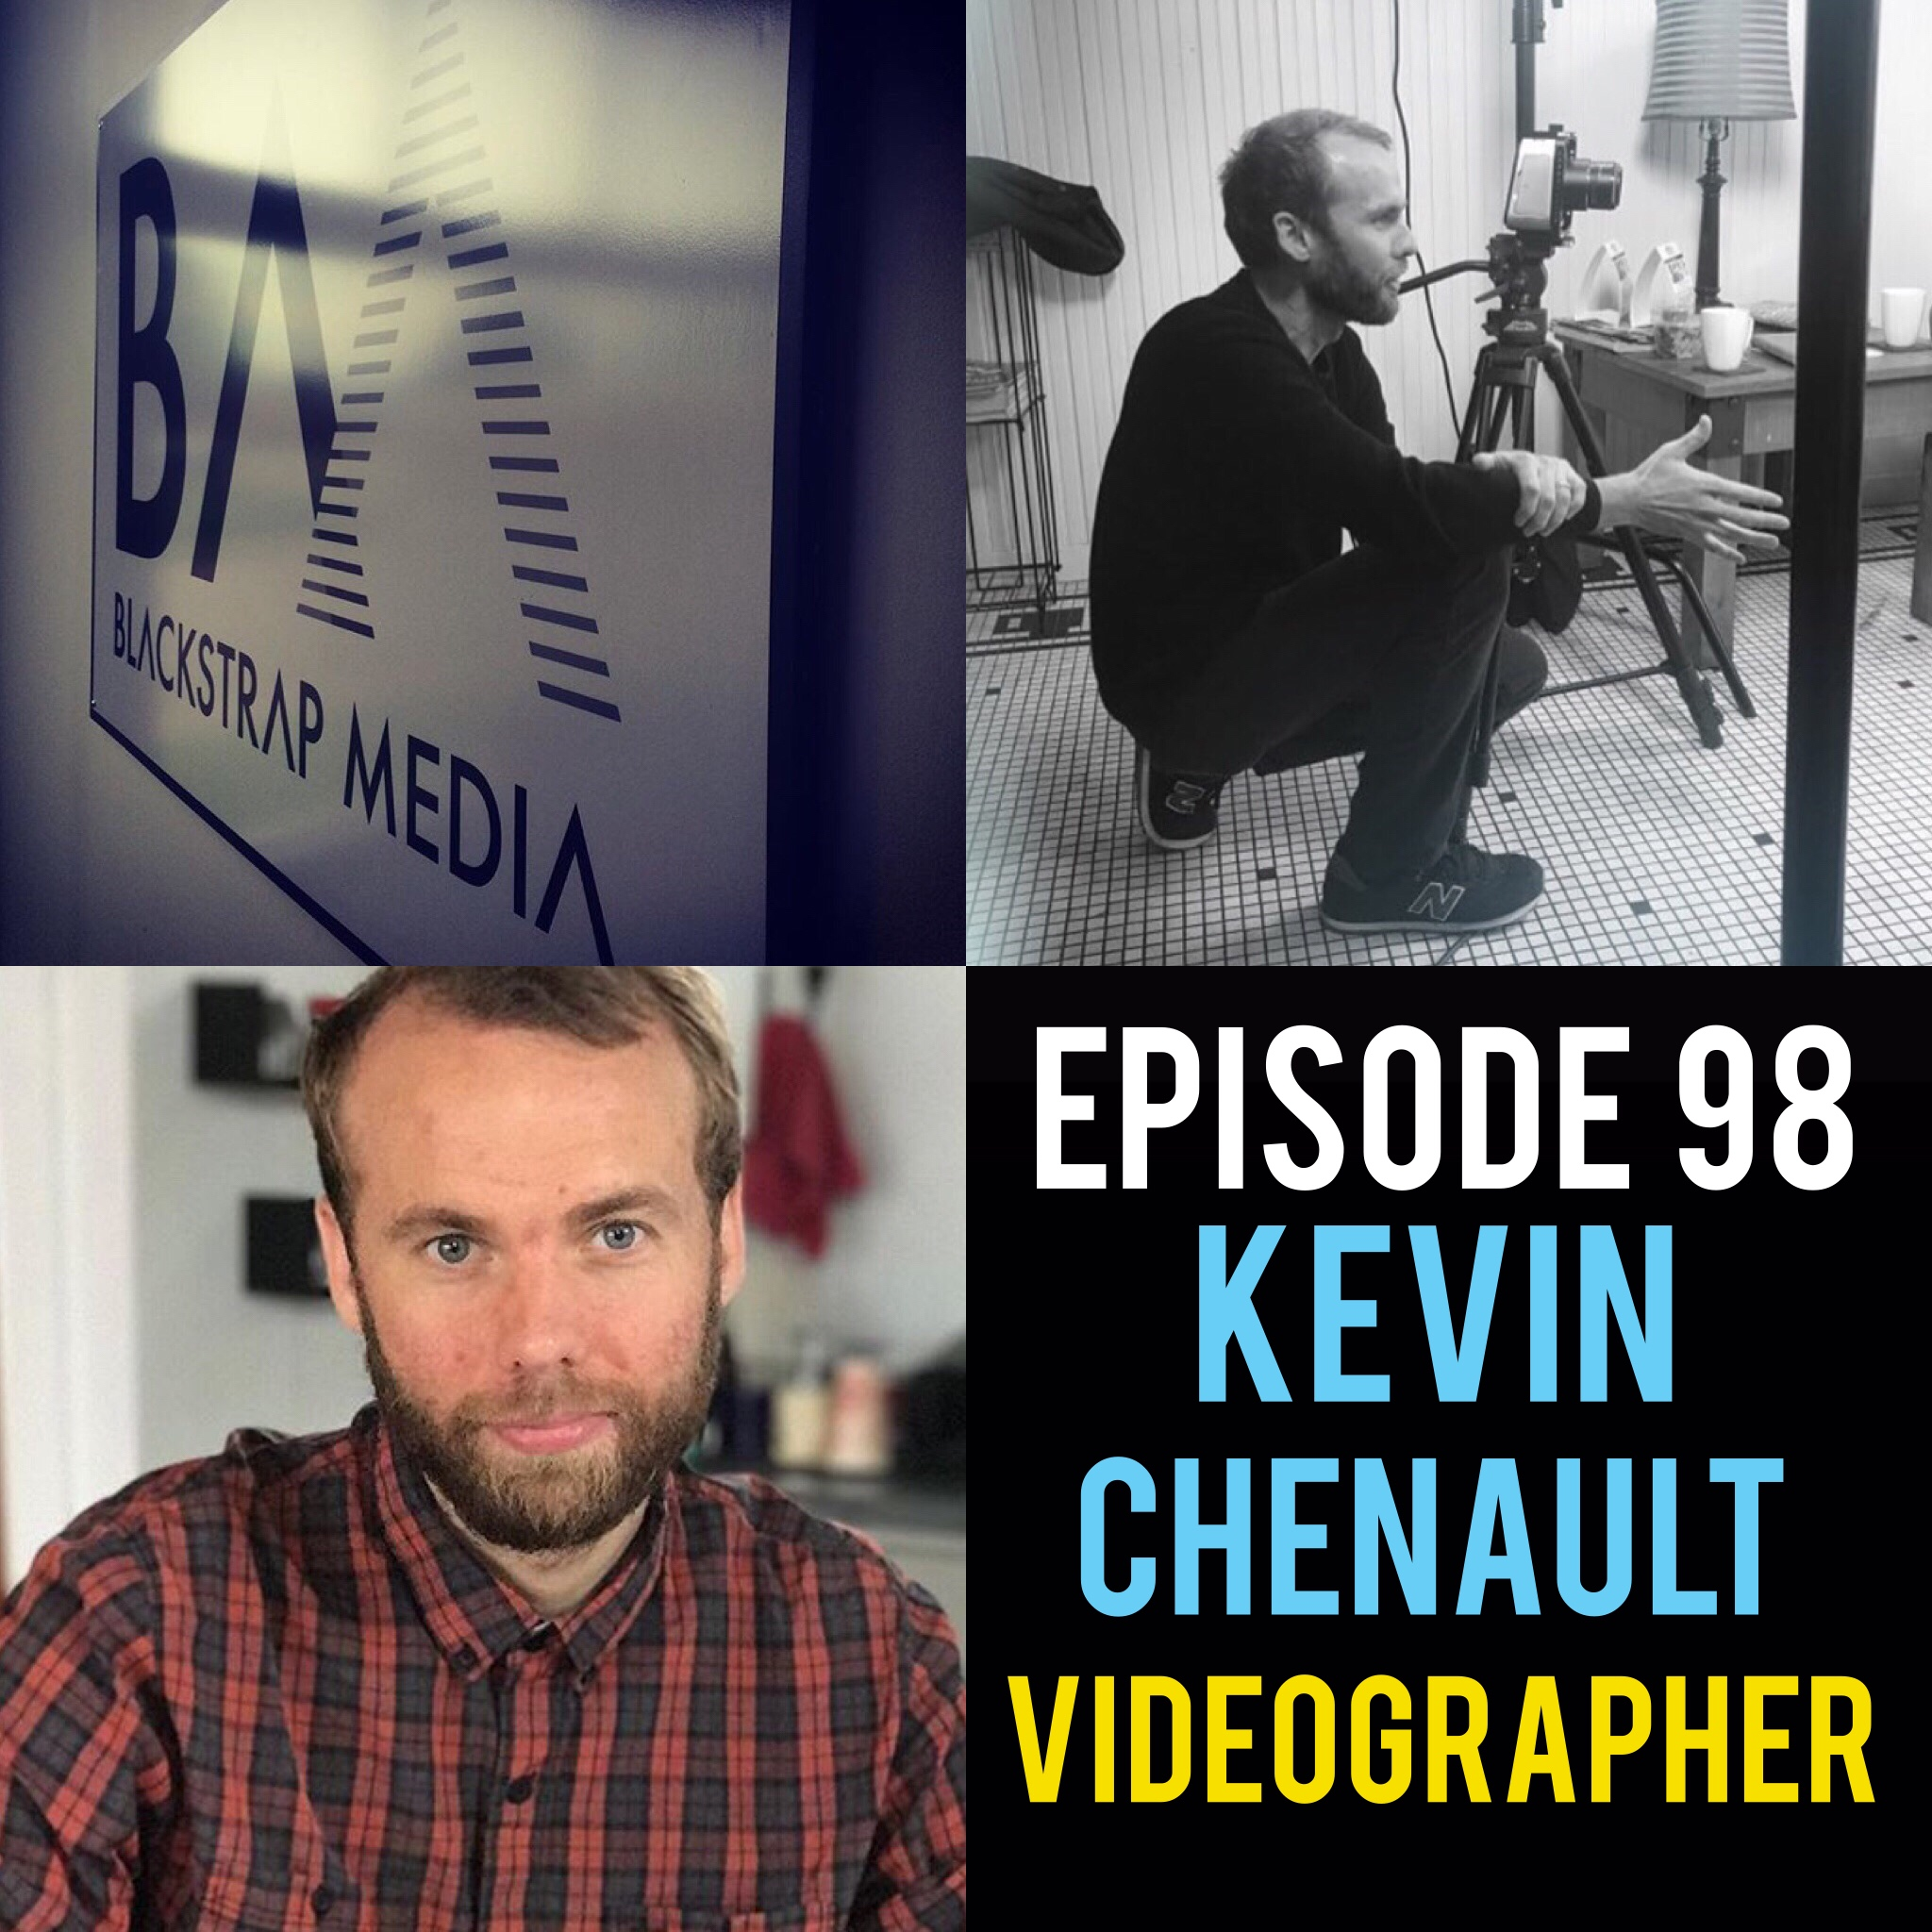 "Episode 98 with Videographer: Kevin Chenault! The founder of Blackstrap Media breaks down his unorthodox and motivated path to carving out a space in the world of digital media. Providing some of the best video content in the Midwest, Kevin provides countless do's and don'ts he learned along the way. https://blackstrapmedia.com/  Song of the week: ""The Mouth of the Water"" by Together In Dust! https://togetherindust.bandcamp.com/"